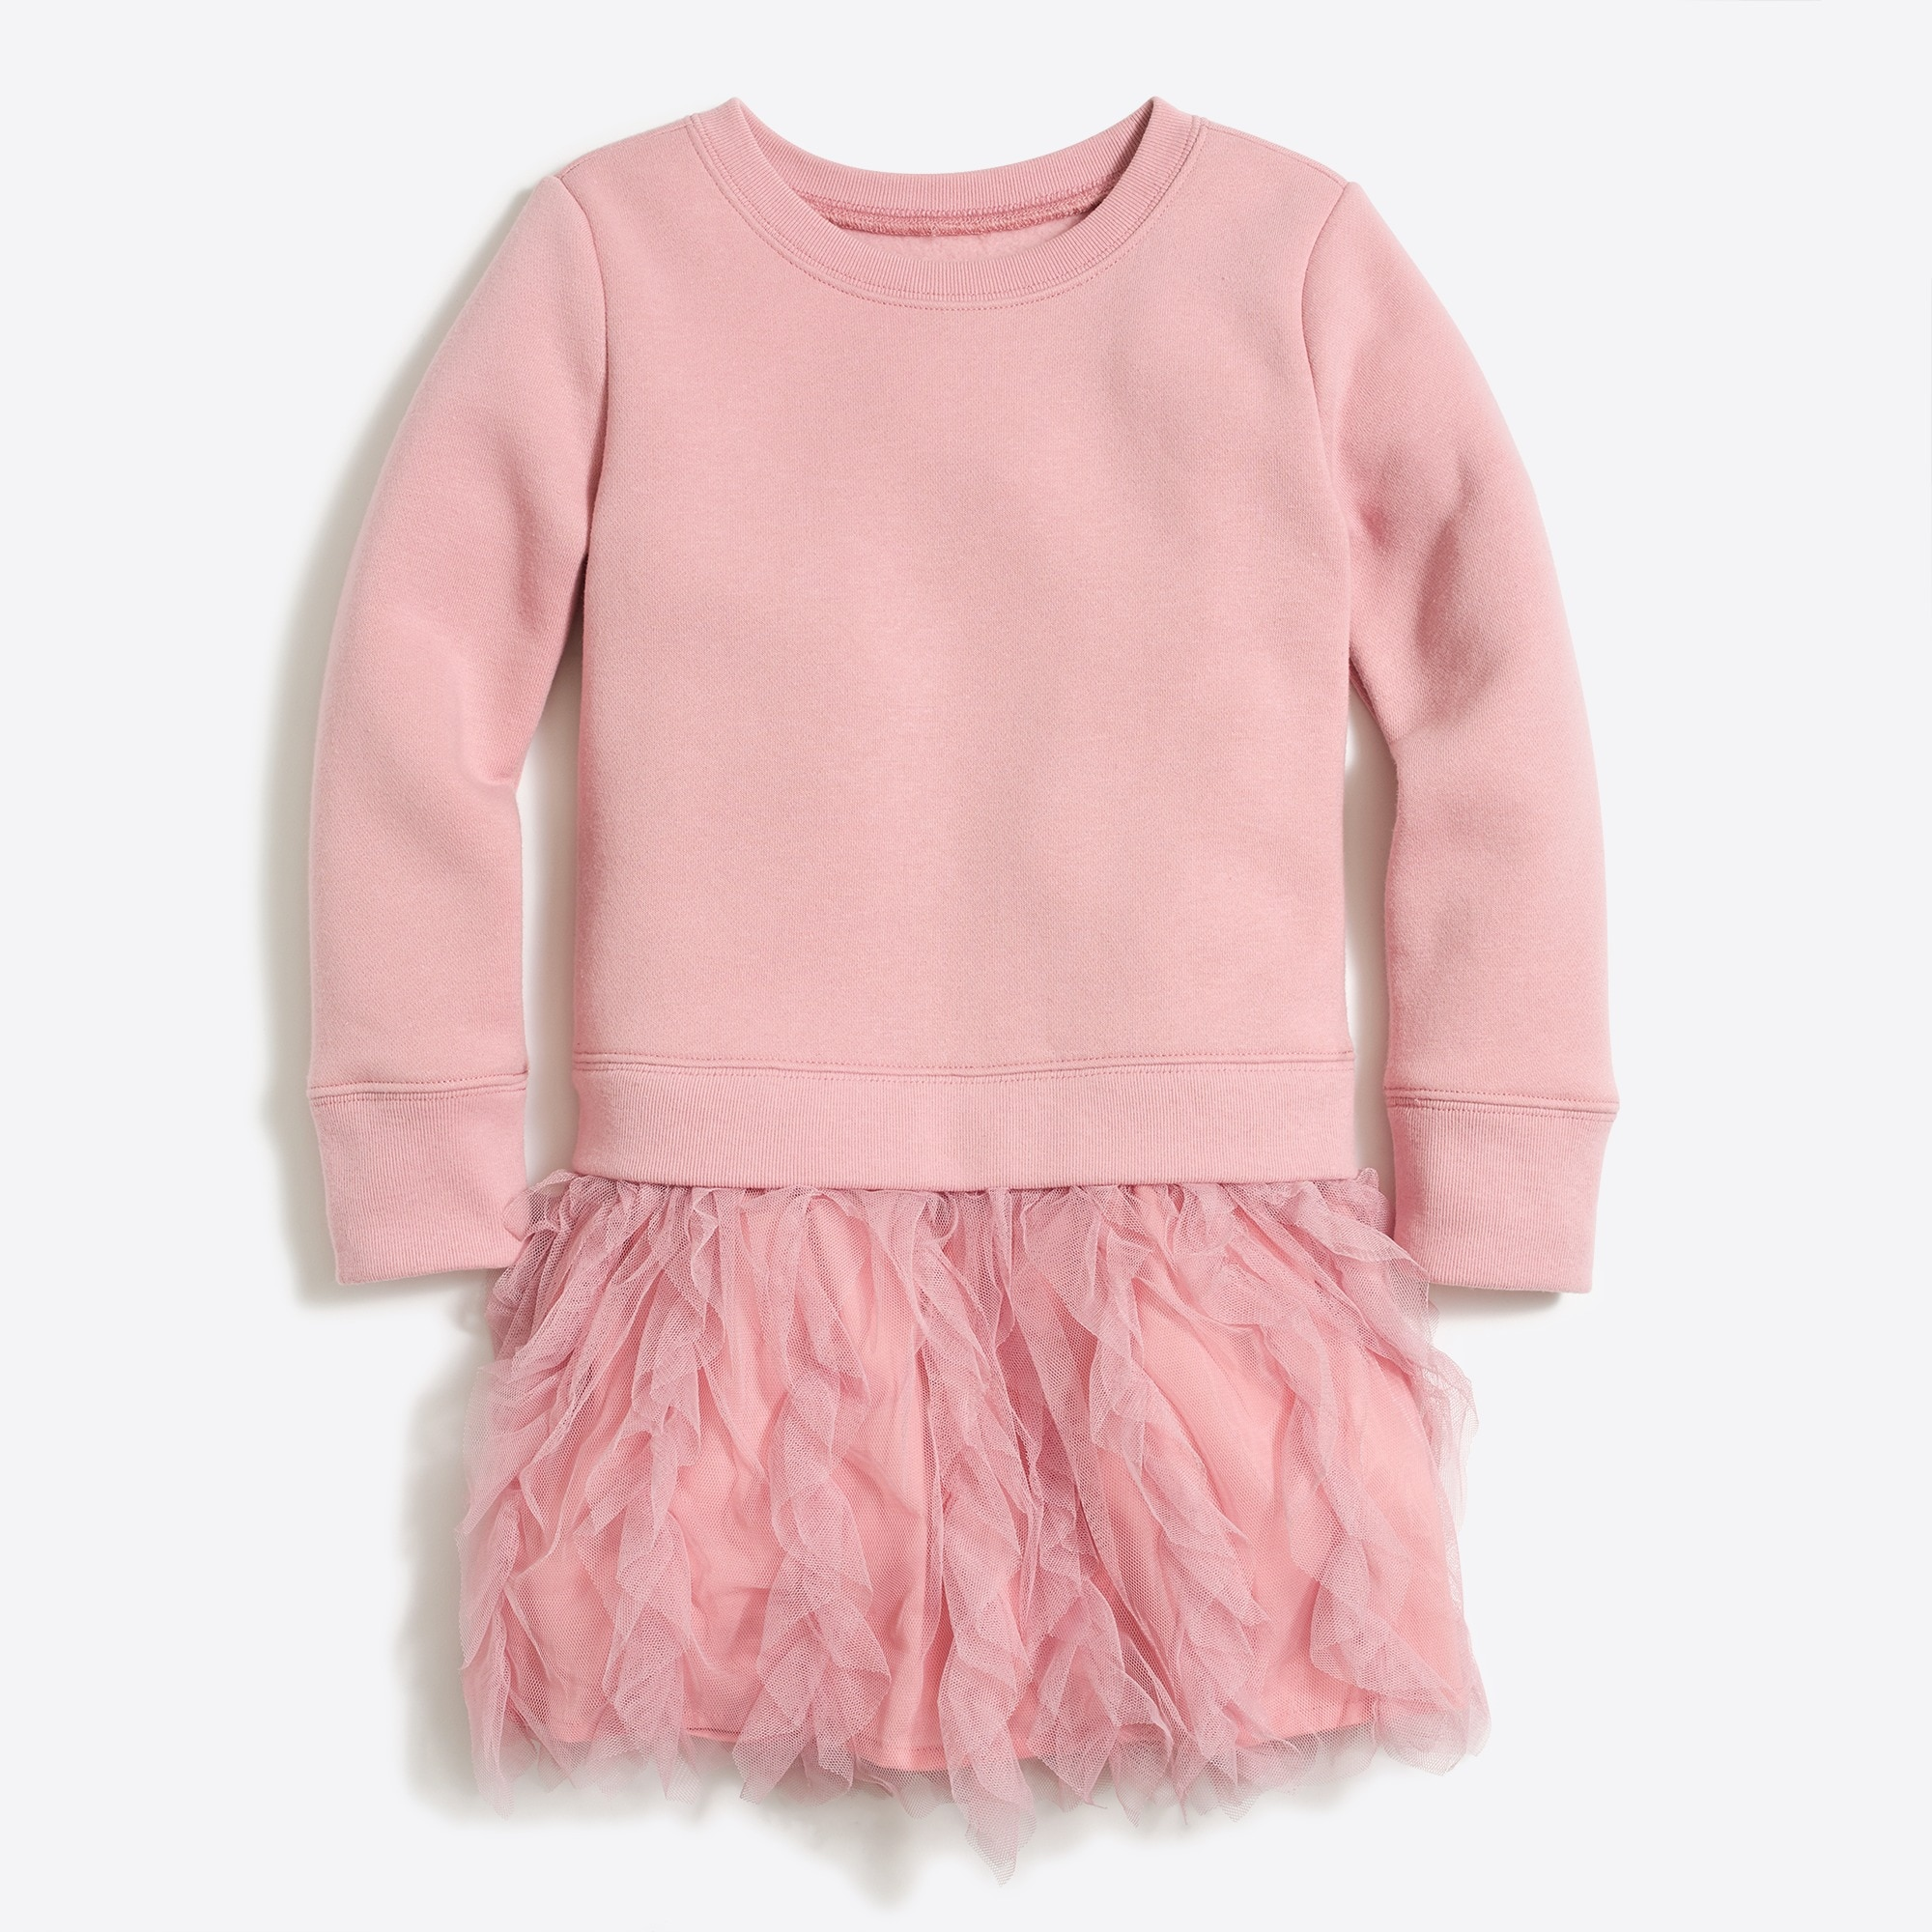 girls' ruffle tulle sweatshirt dress : factorygirls dresses